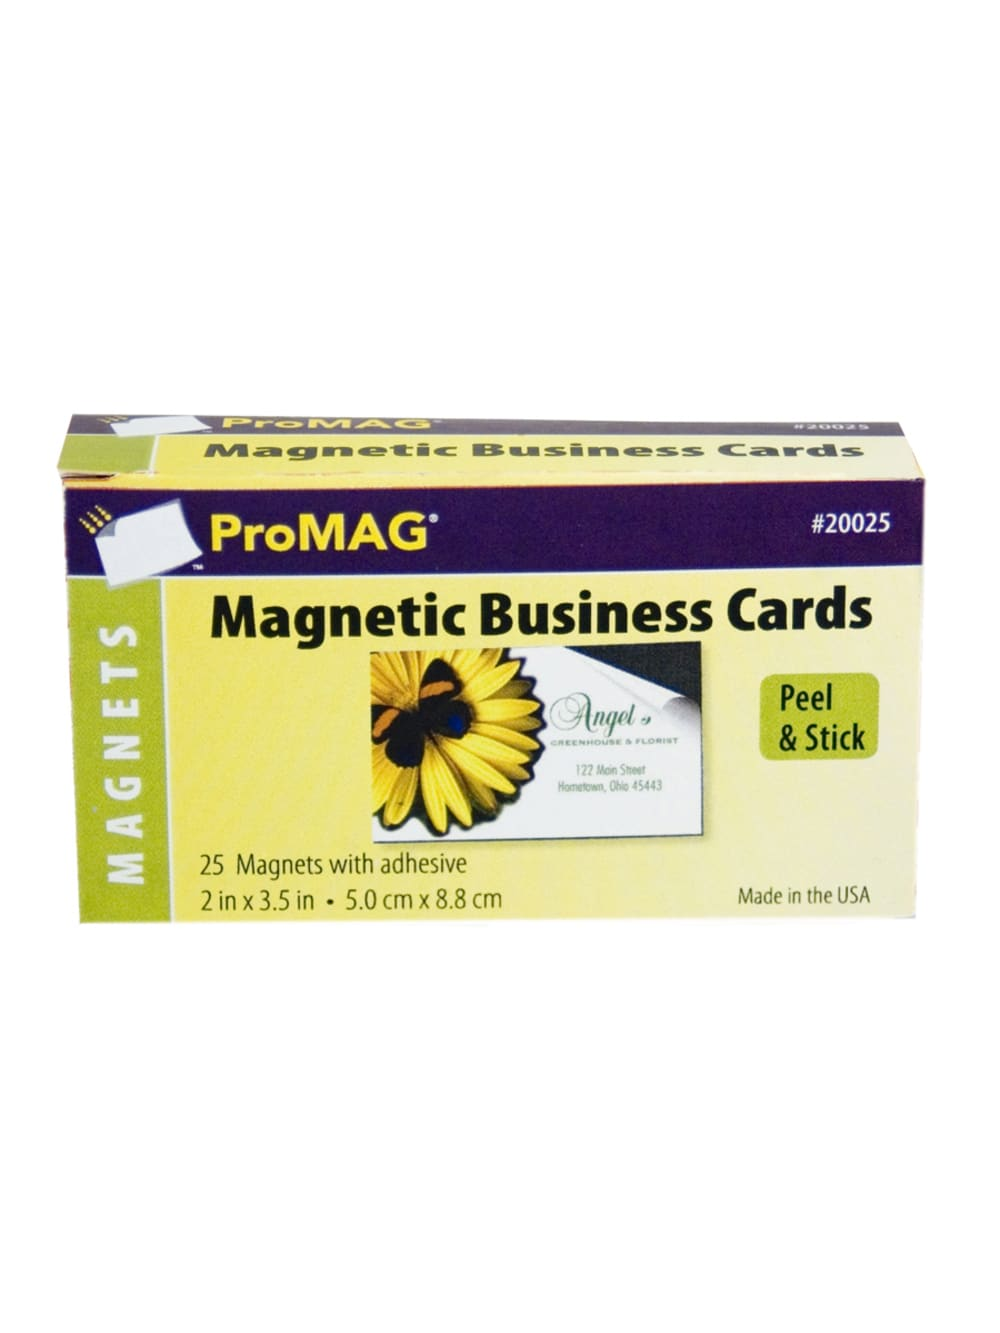 Peel and Stick Self Adhesive Business Card Magnets Value Pack of 100 Great Promotional Product